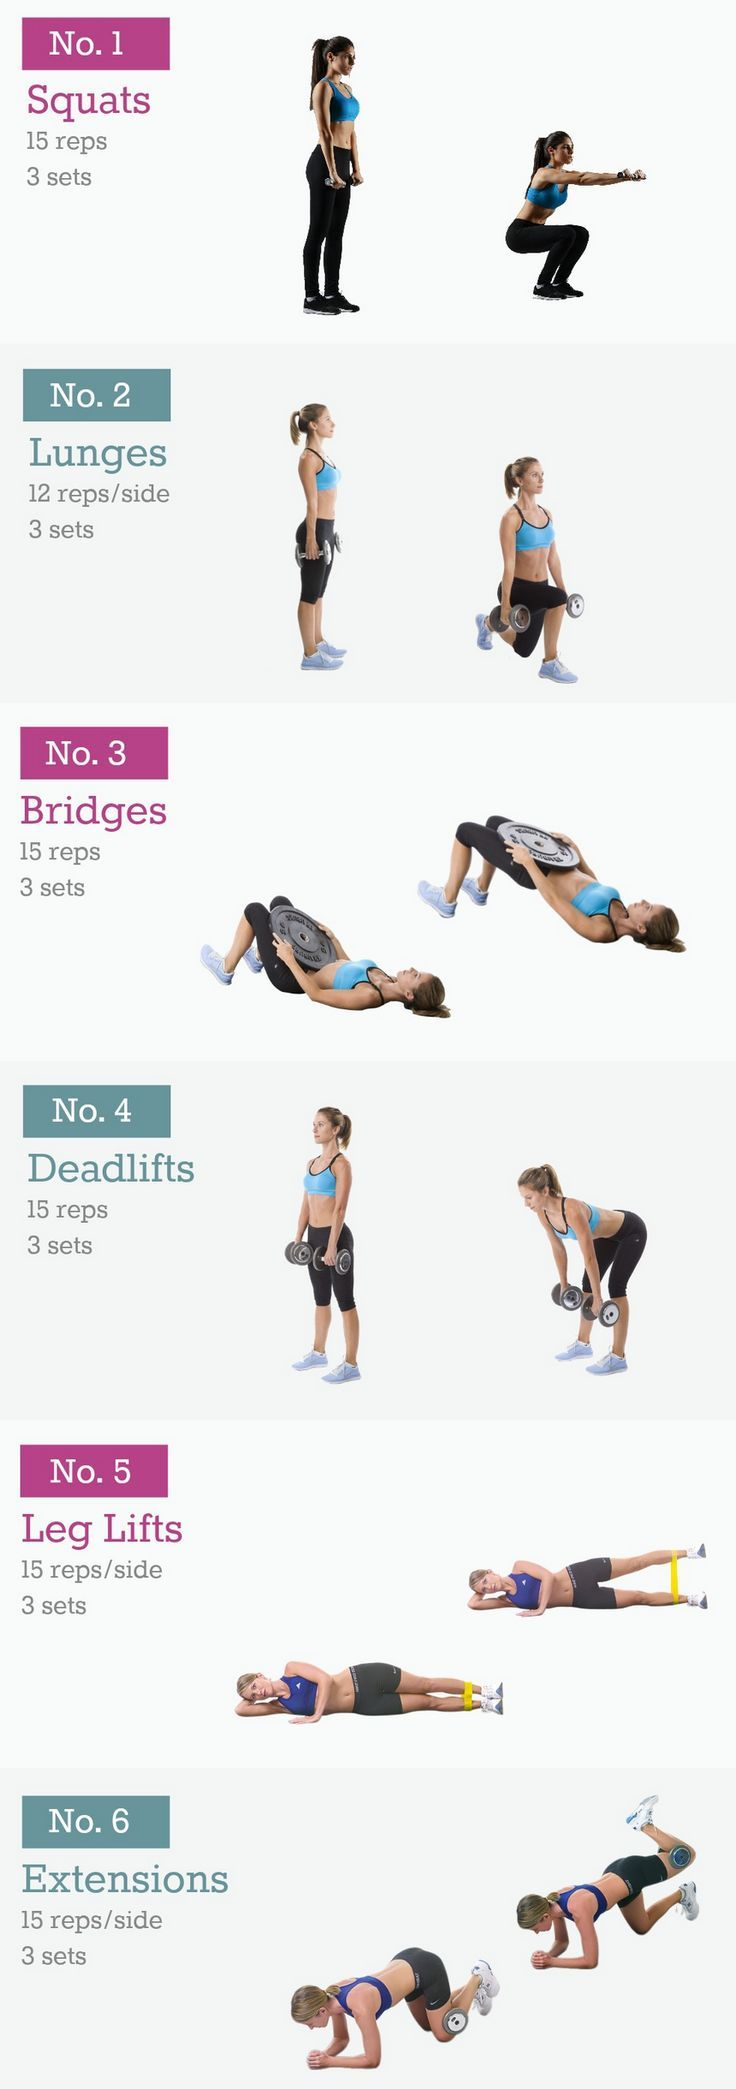 Dumbbell Workouts, Dumbbell Exercises, Glute Workouts, Glute Exercises, Butt Wor... - Dieting And Workouts - #Butt #Dieting #Dumbbell #exercises #glute #Wor #workouts #dumbbellexercises